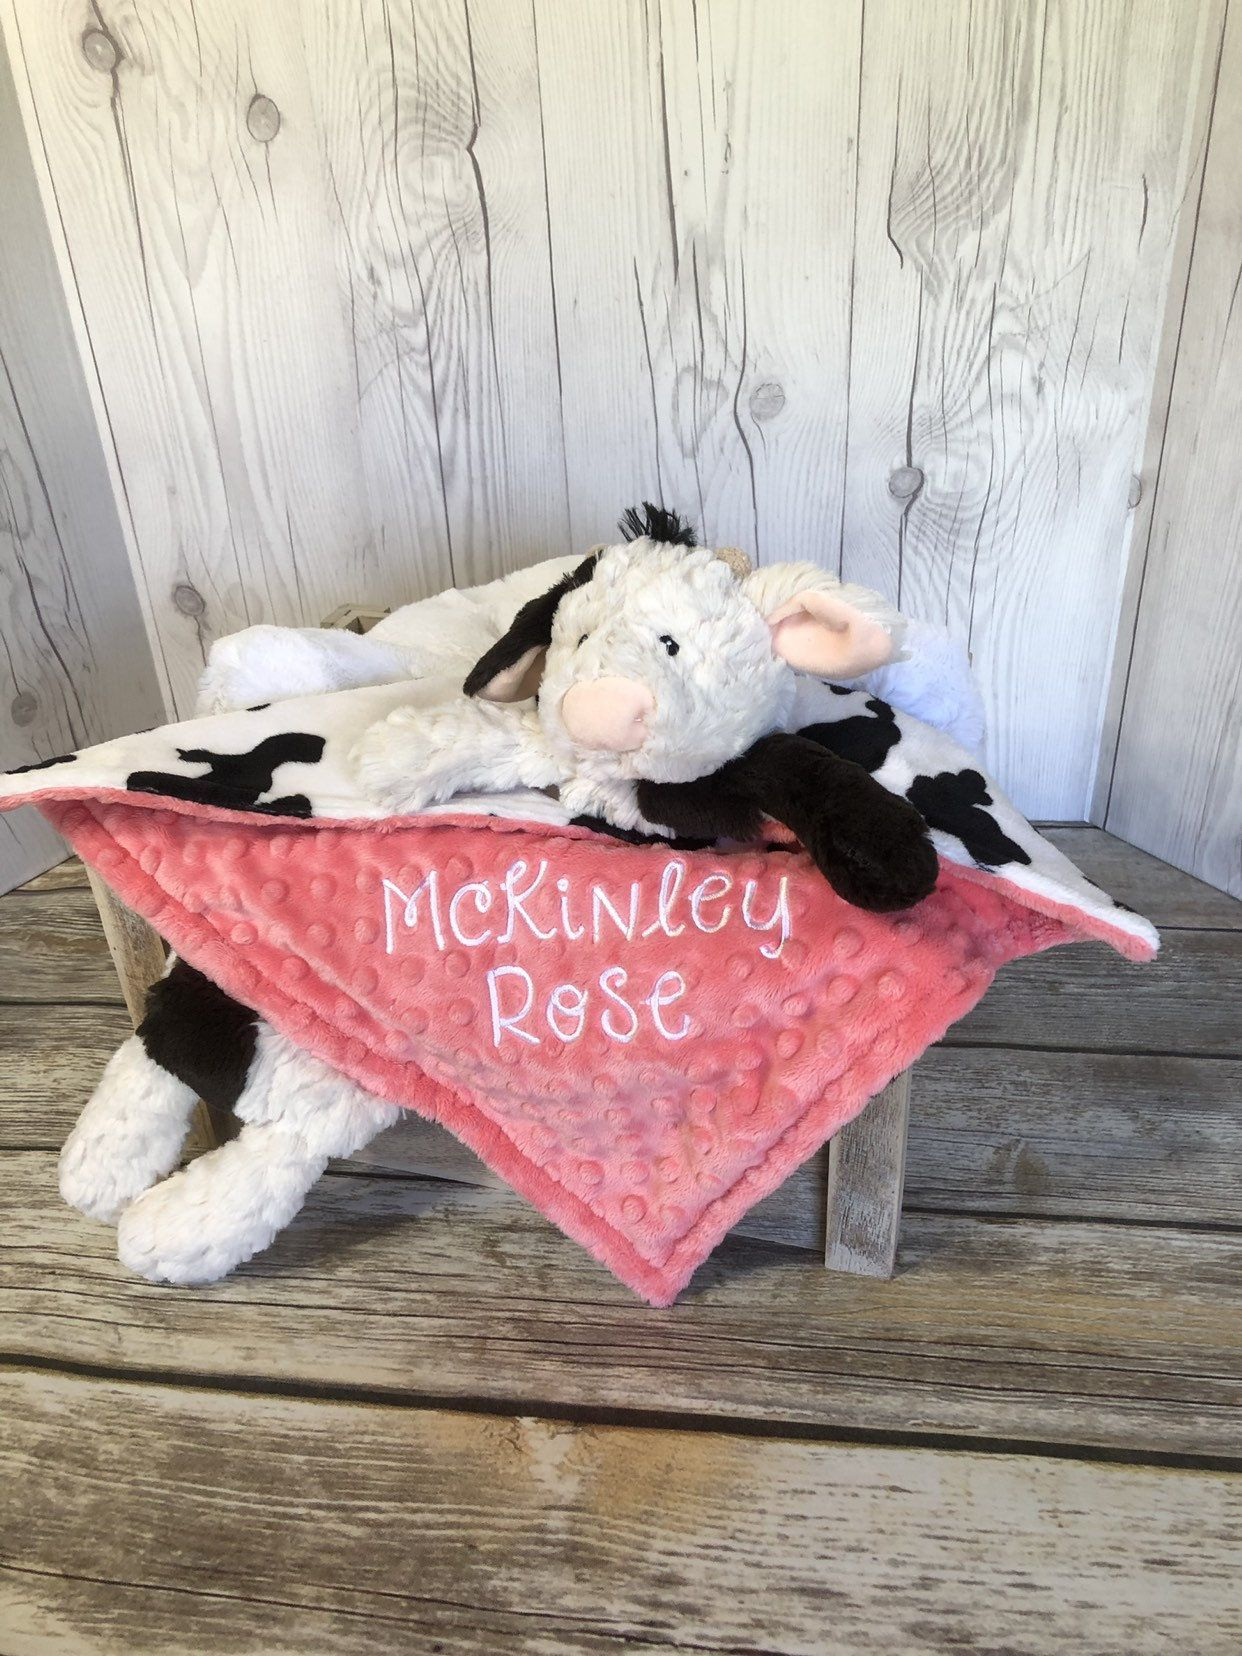 Personalized Cow Security Blanket, Black and White Cow Security Lovey, Girl Cow Lovey, Animal Lovey, Minky Security Blanket, Cow Lovey #securityblankets